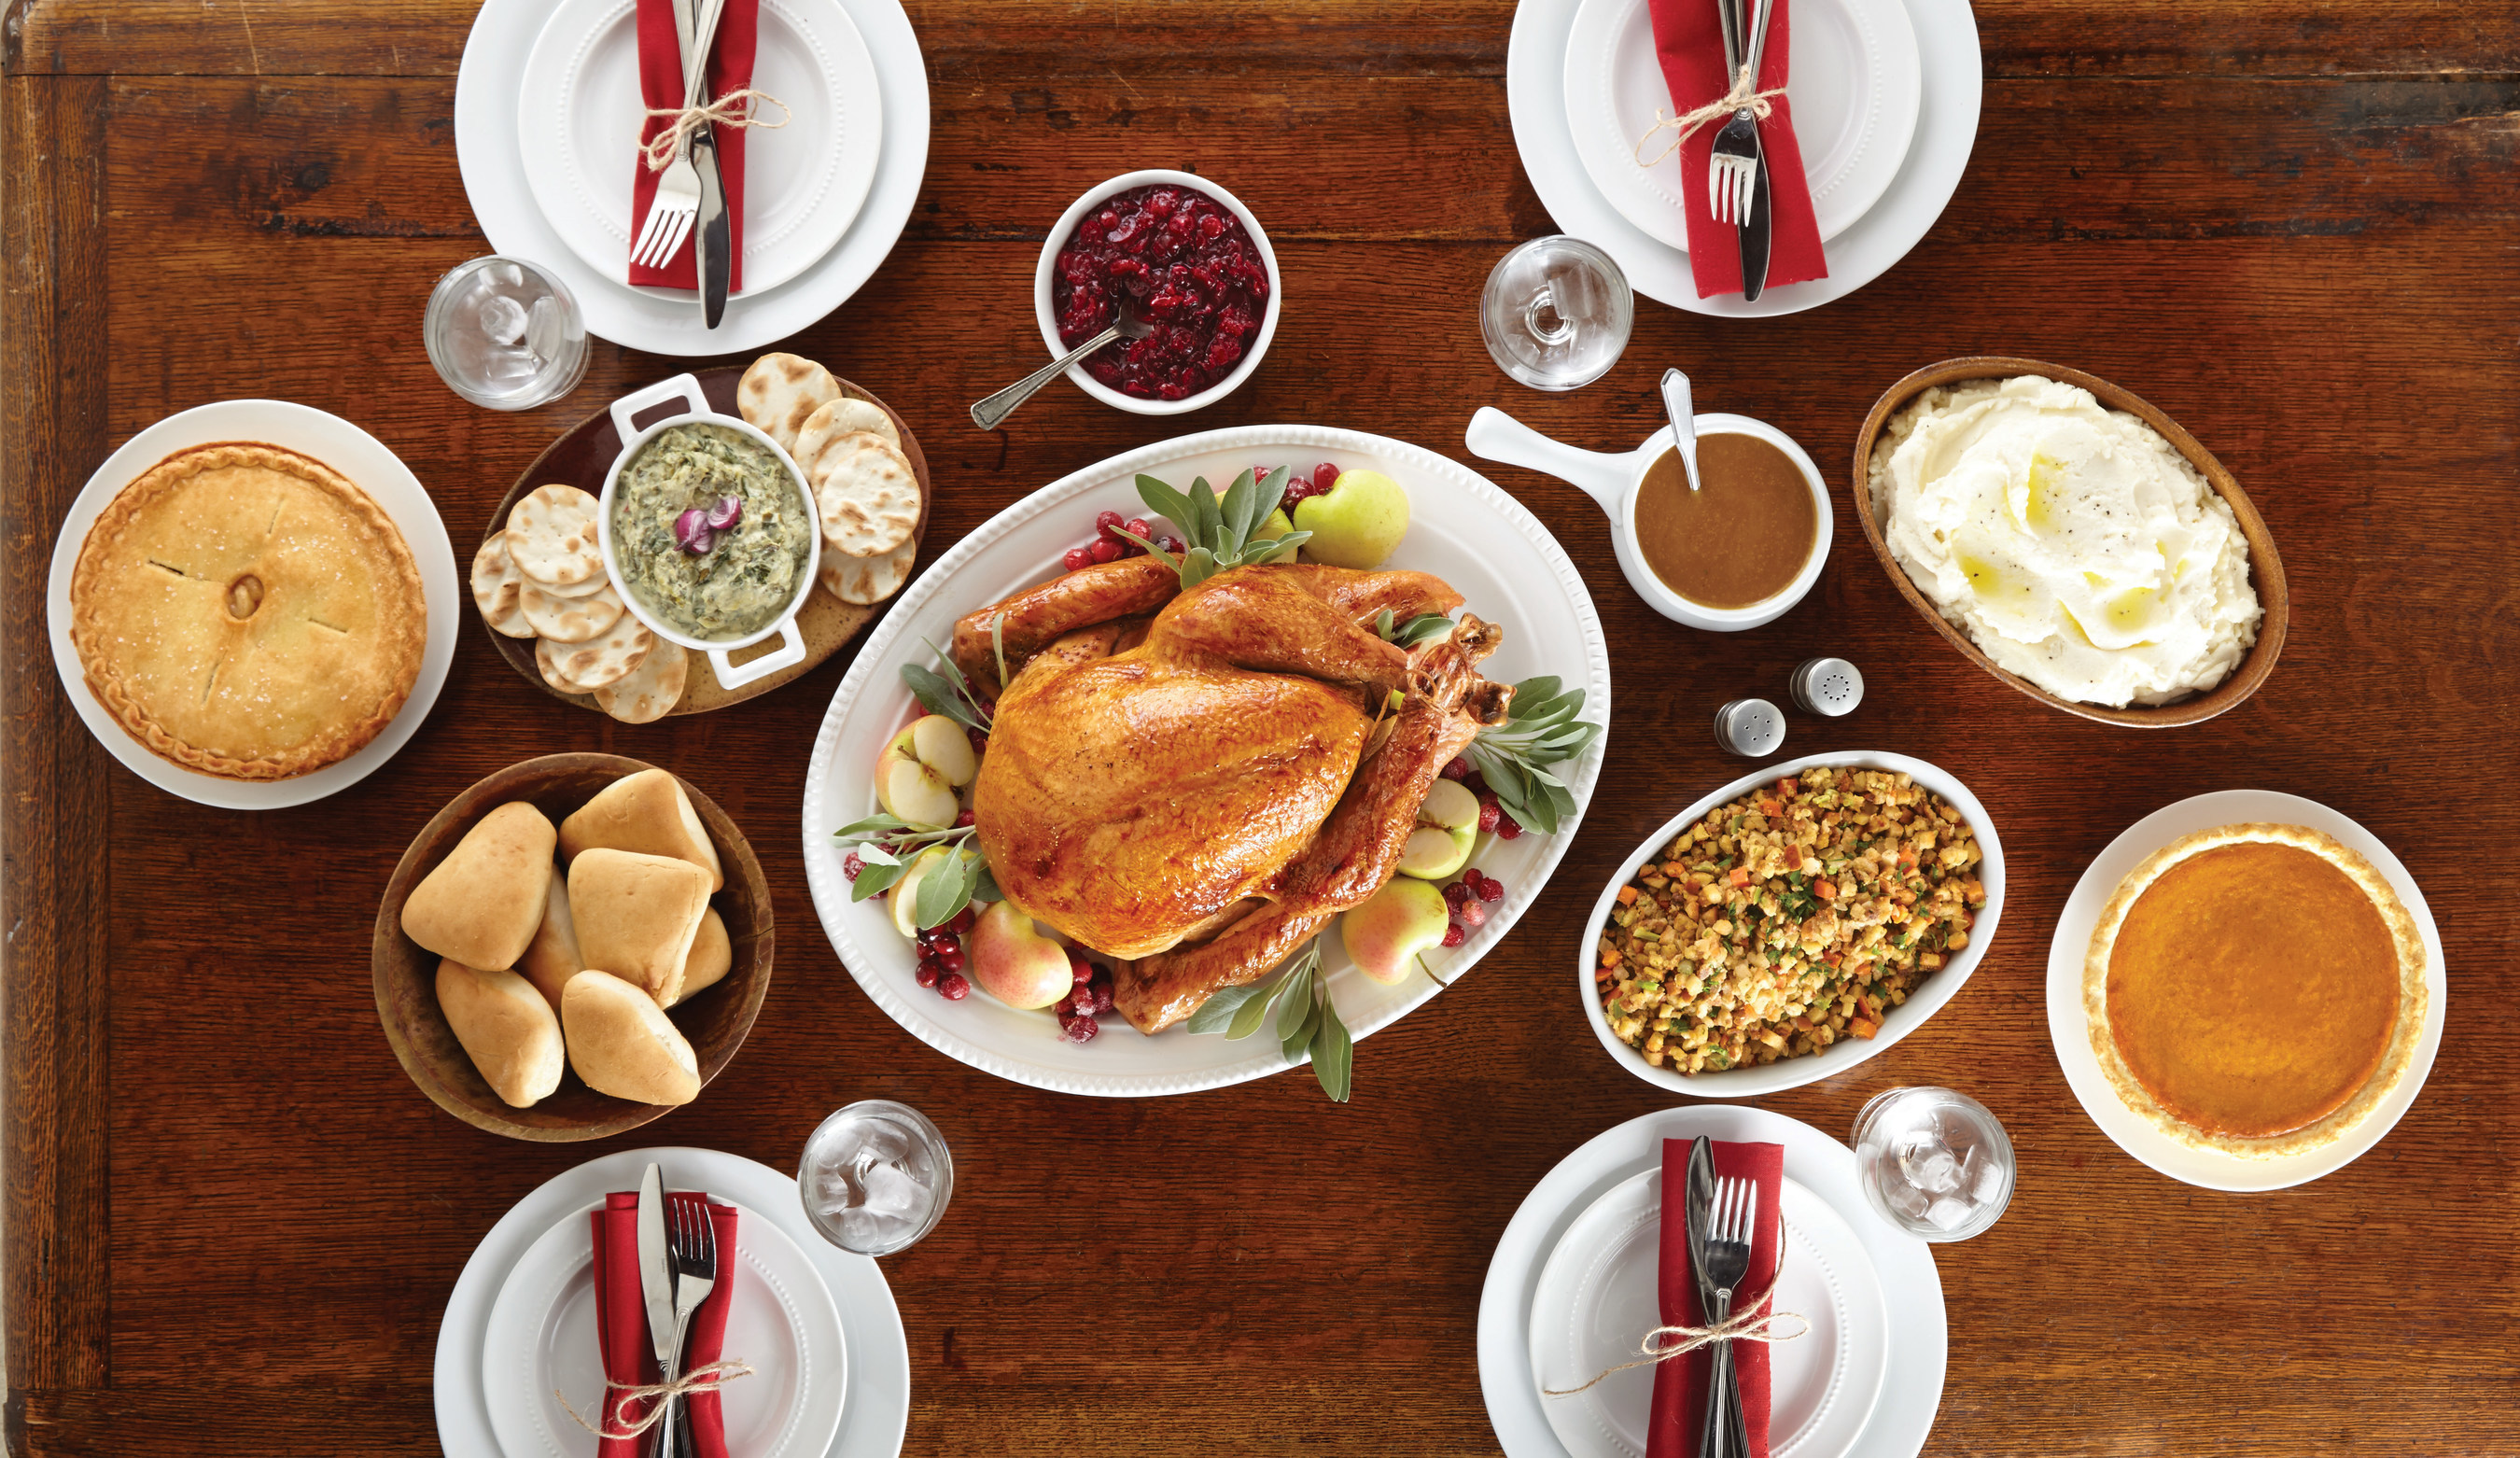 Boston Market Heat & Serve Thanksgiving Meals can feed four to 12 guests. A Thanksgiving meal for 12 includes turkey, mashed potatoes and gravy, cranberry walnut relish, vegetable stuffing, rolls, an appetizer and pies for $9.17 per person.